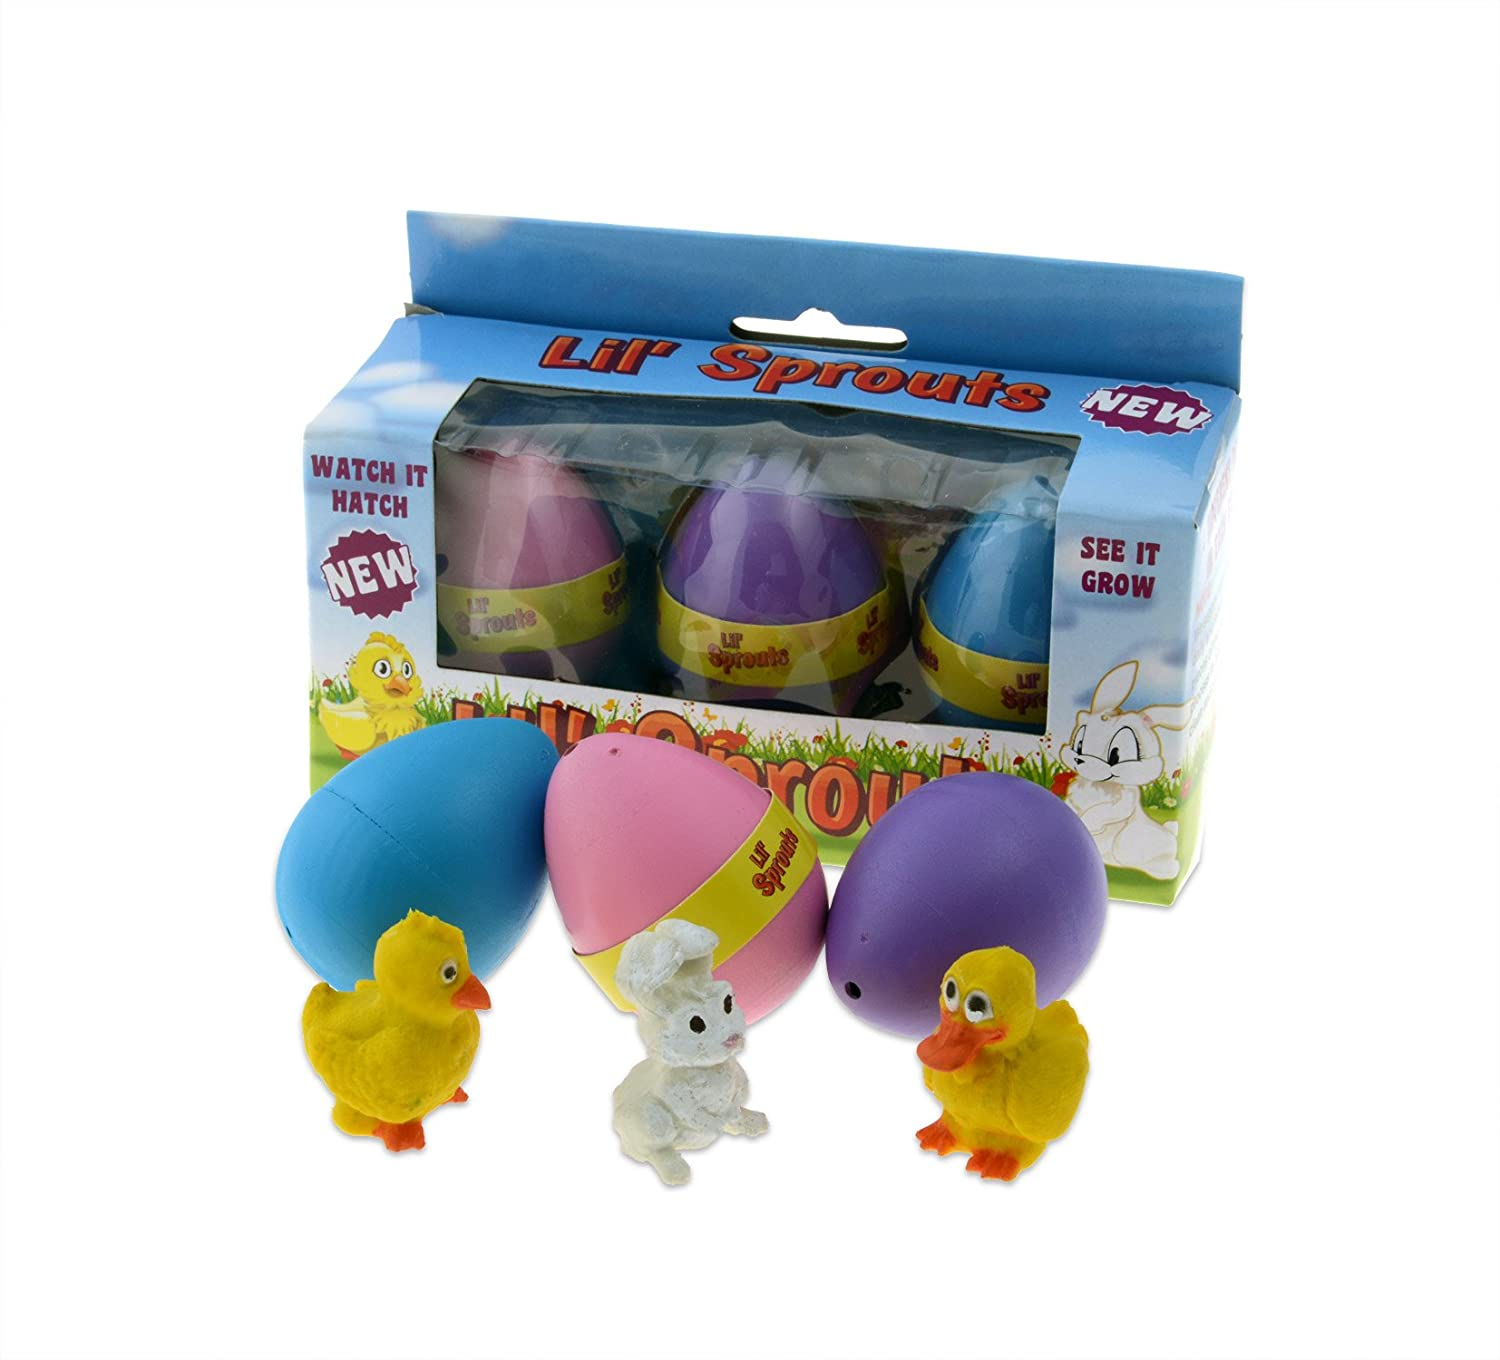 Amazon lil sprouts hatching easter eggs 3 pack watch amazon lil sprouts hatching easter eggs 3 pack watch them grow overnight toys games negle Image collections